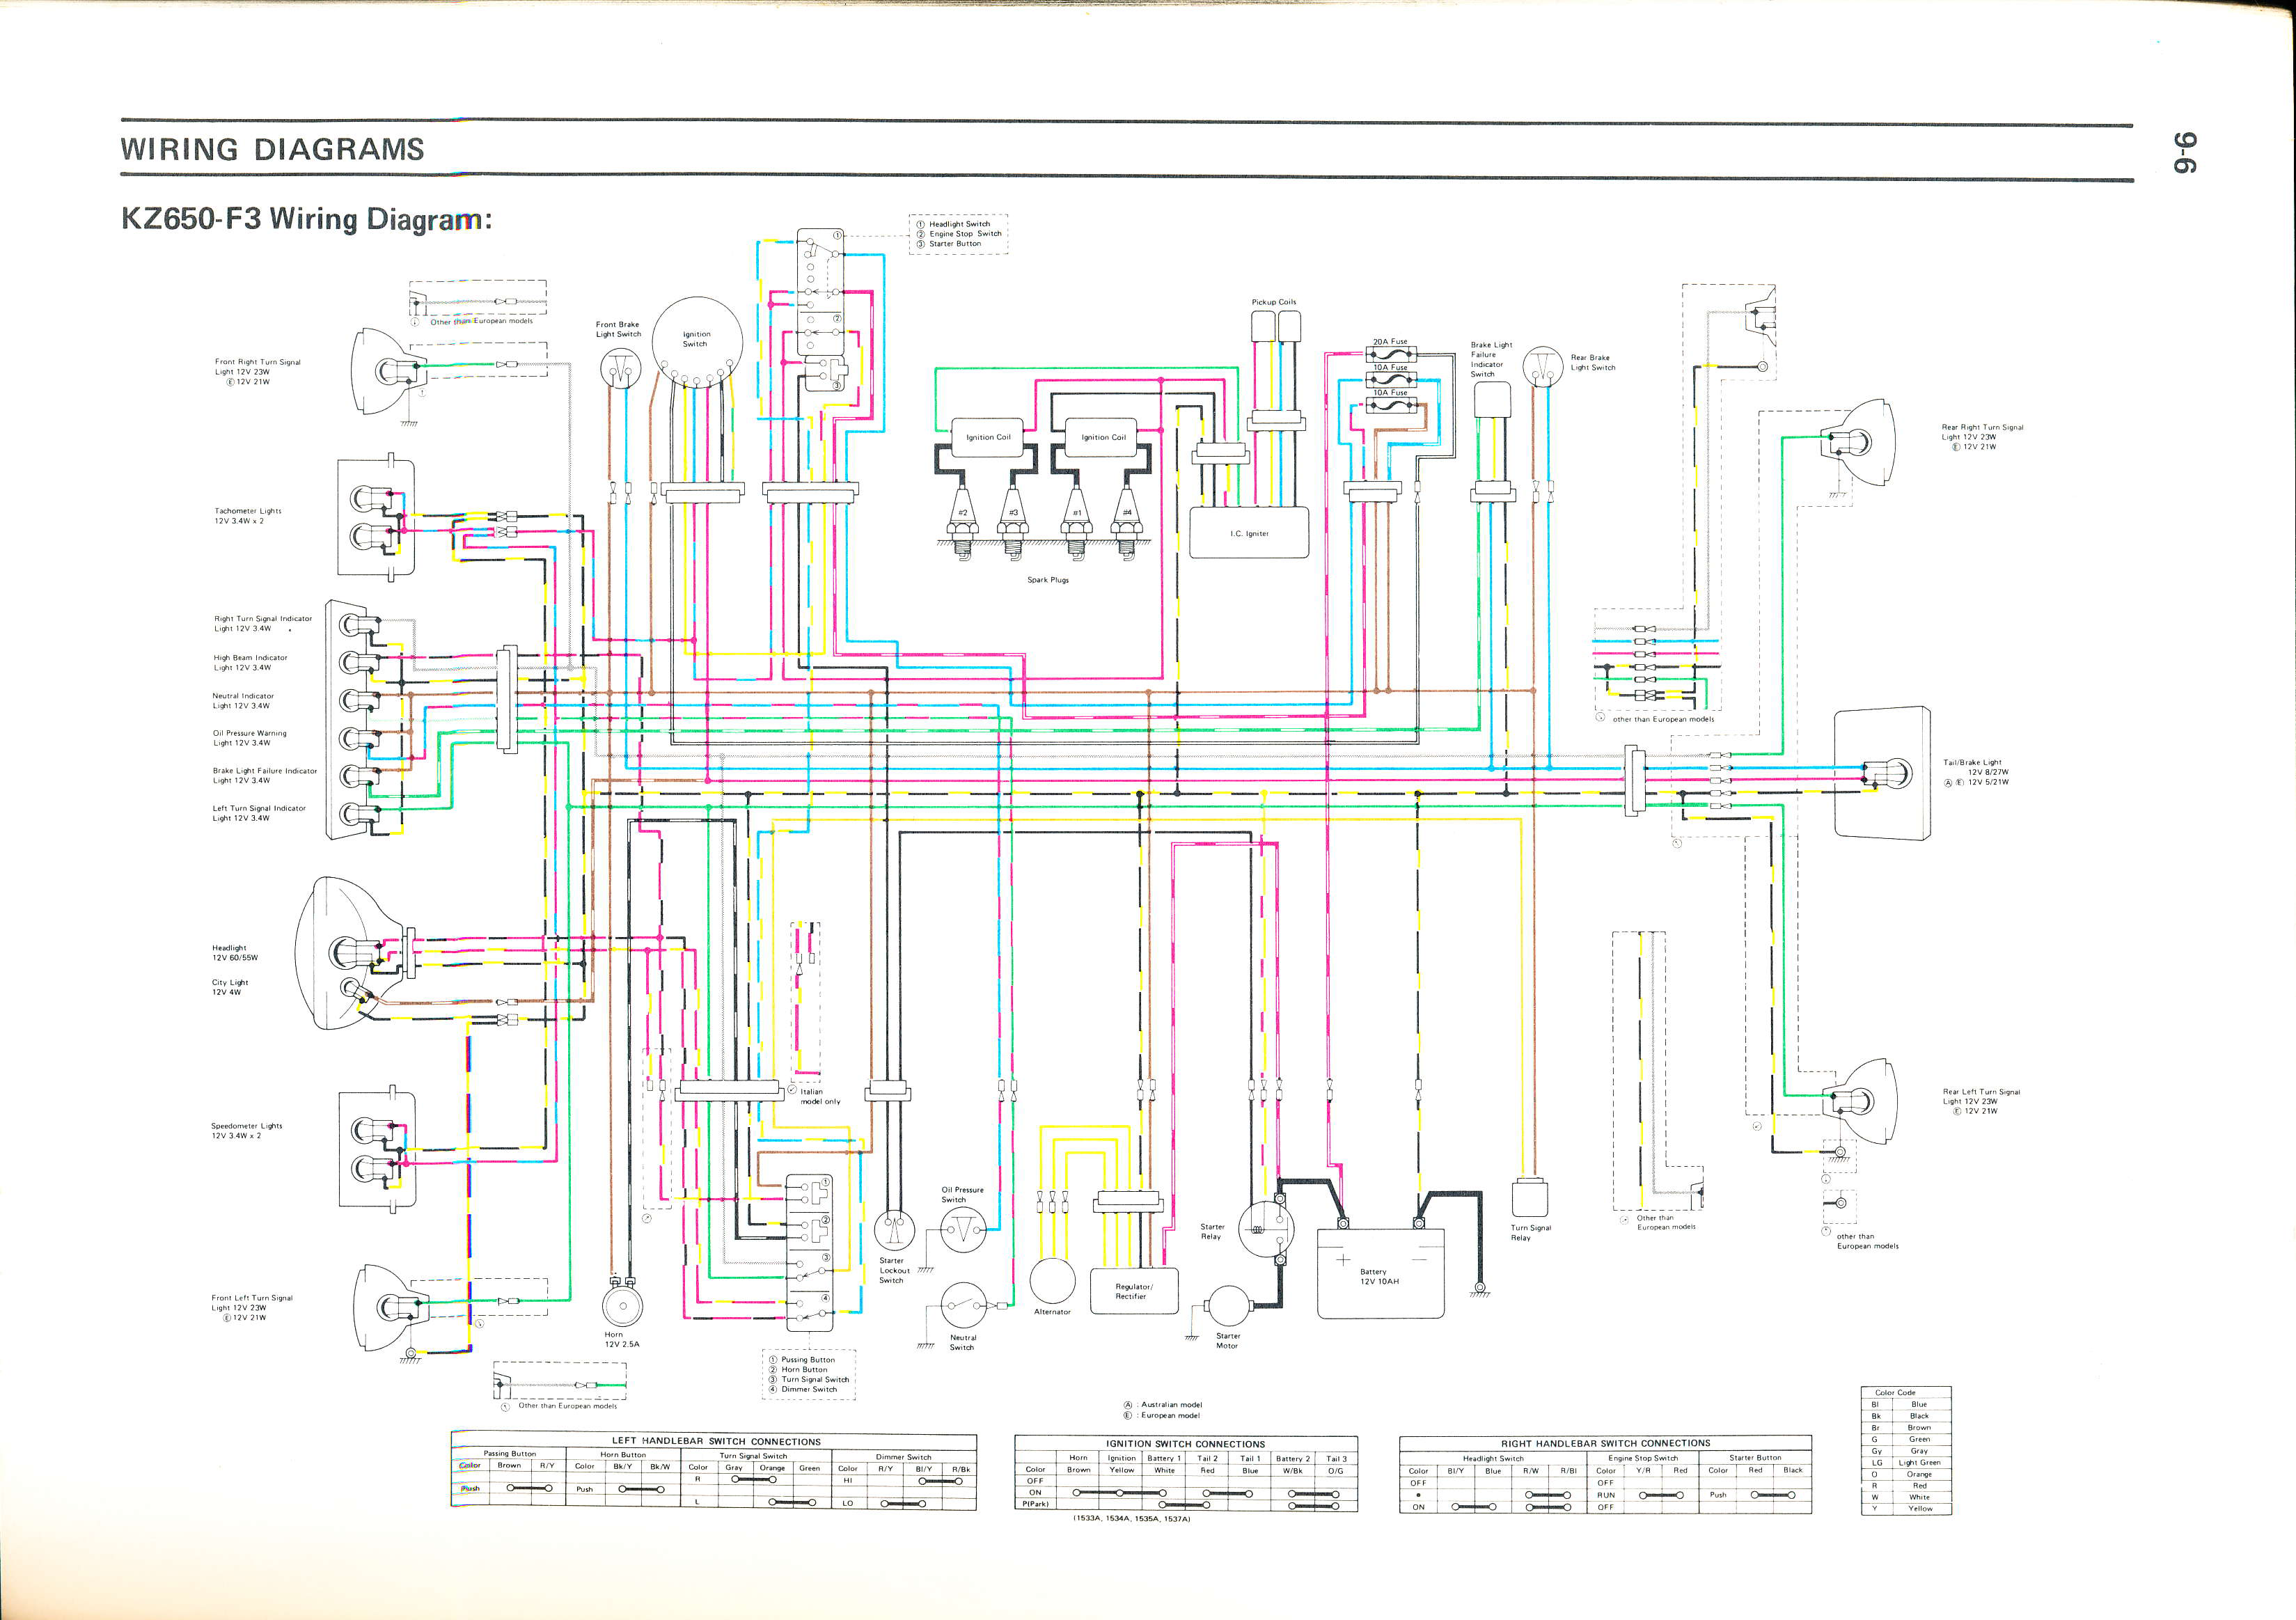 wiring diagrams kawasaki motorcycle wiring diagrams 1989 ex250